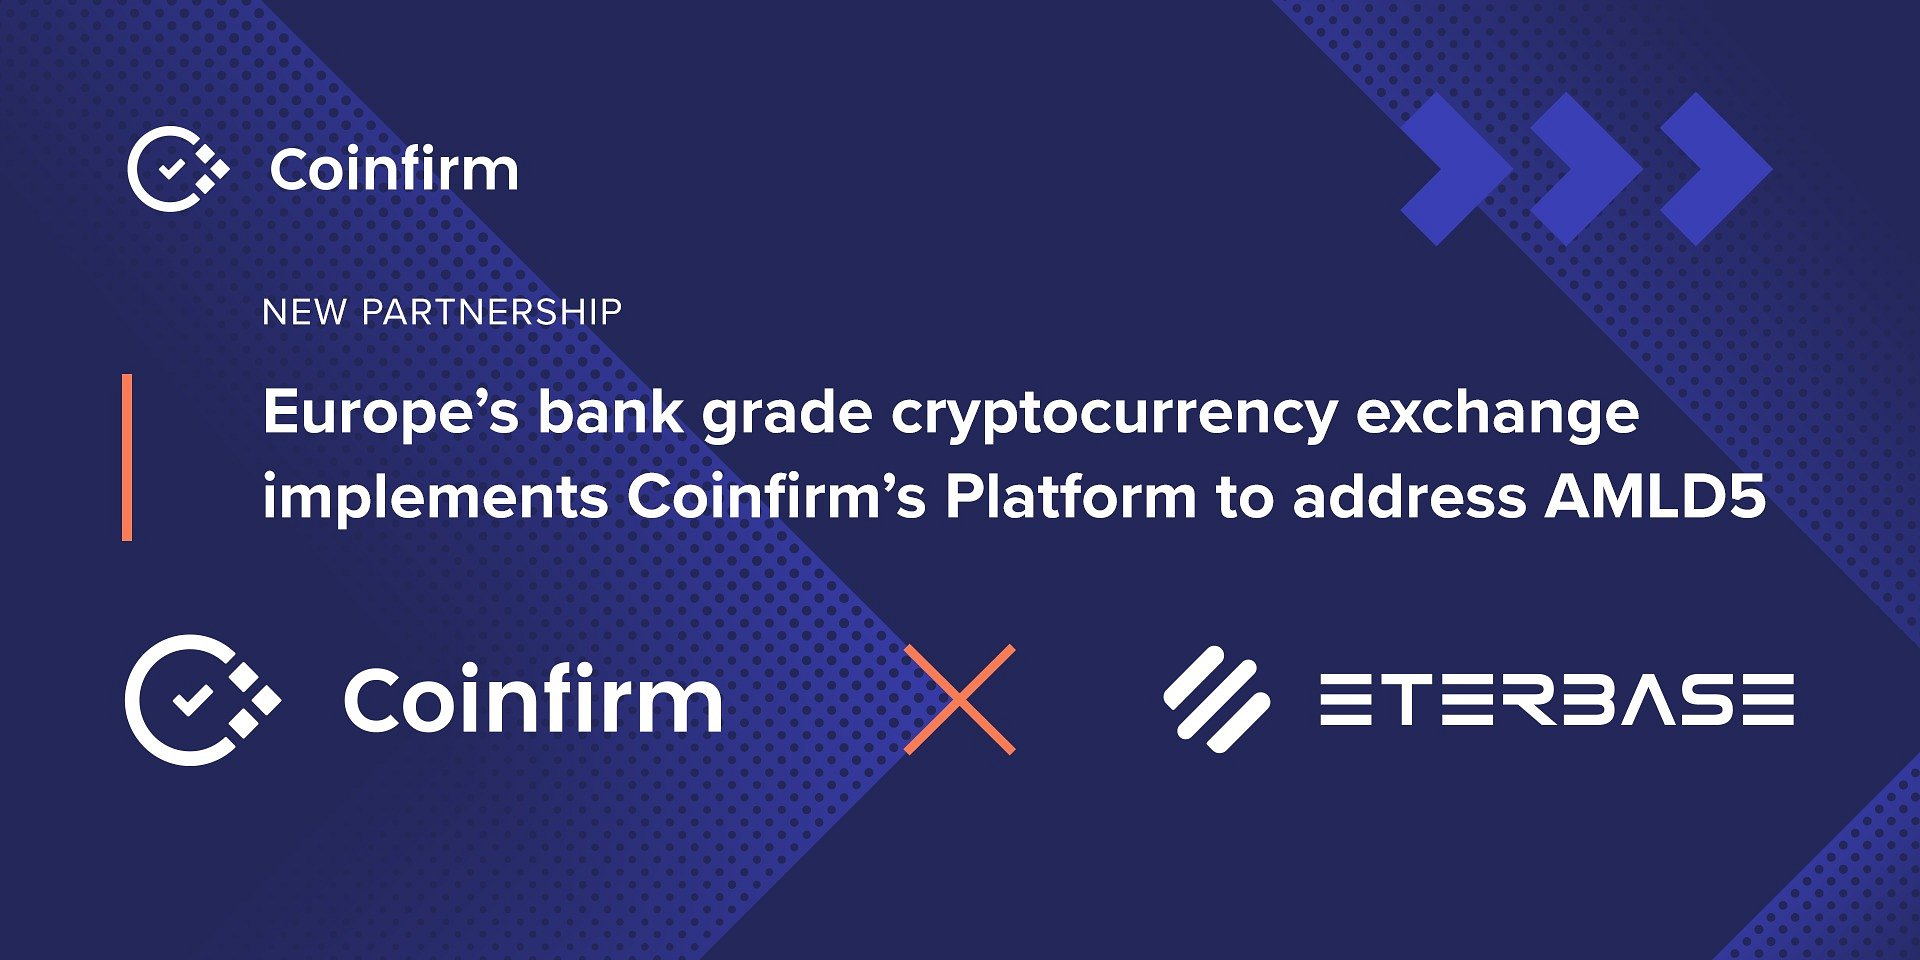 Europe's bank grade cryptocurrency exchange implements Coinfirm's Platform to address AMLD5